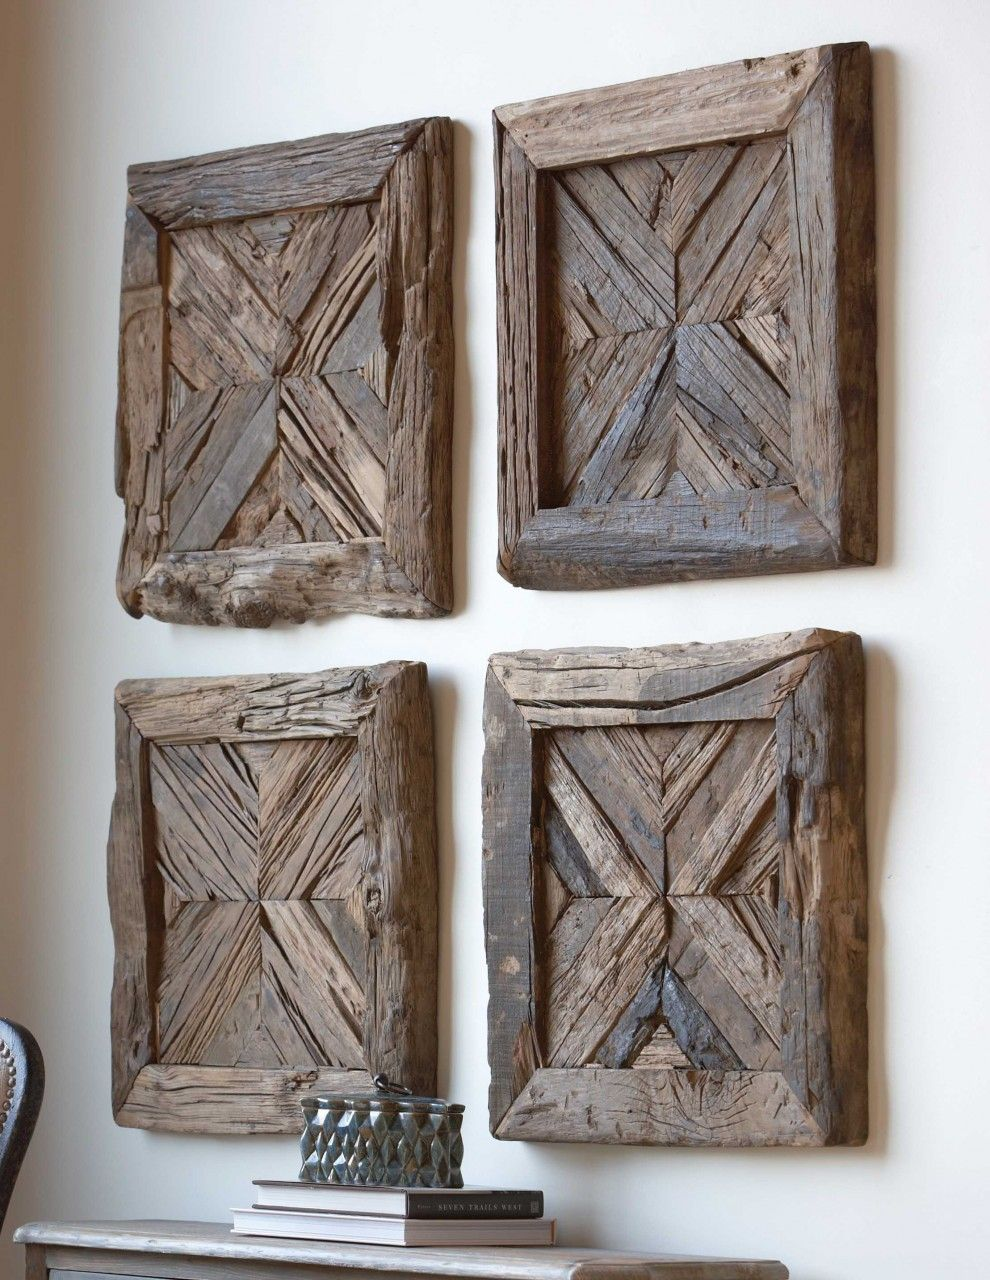 Rustic Wood Wall Decor 20 versatile, rustic decor pieces for your home | wood wall art